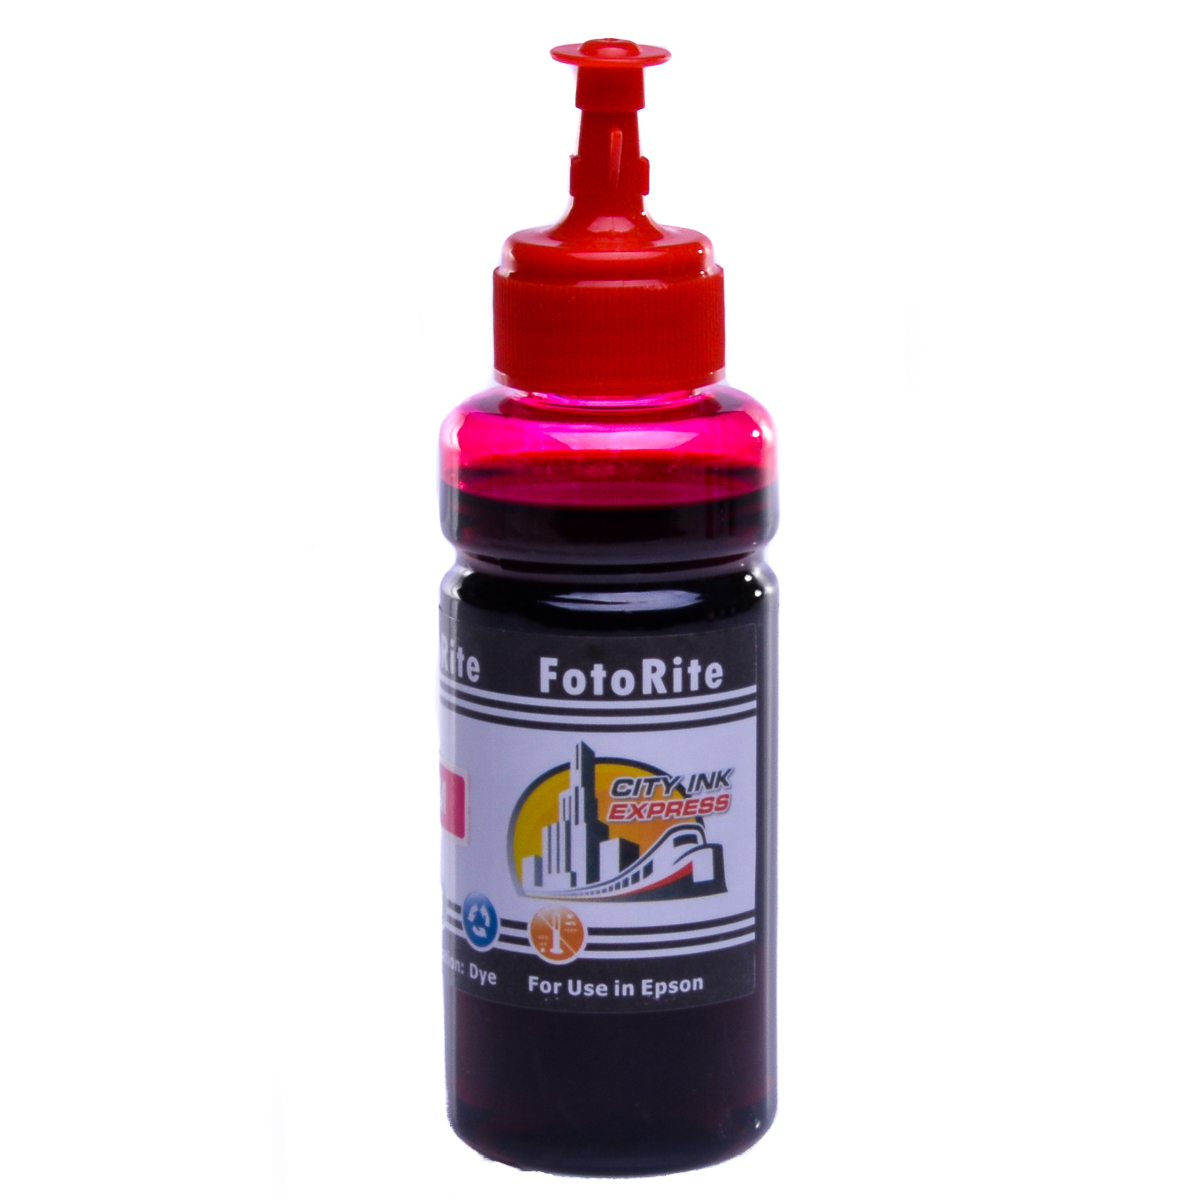 Cheap Magenta dye ink refill replaces Epson L220 - T6643